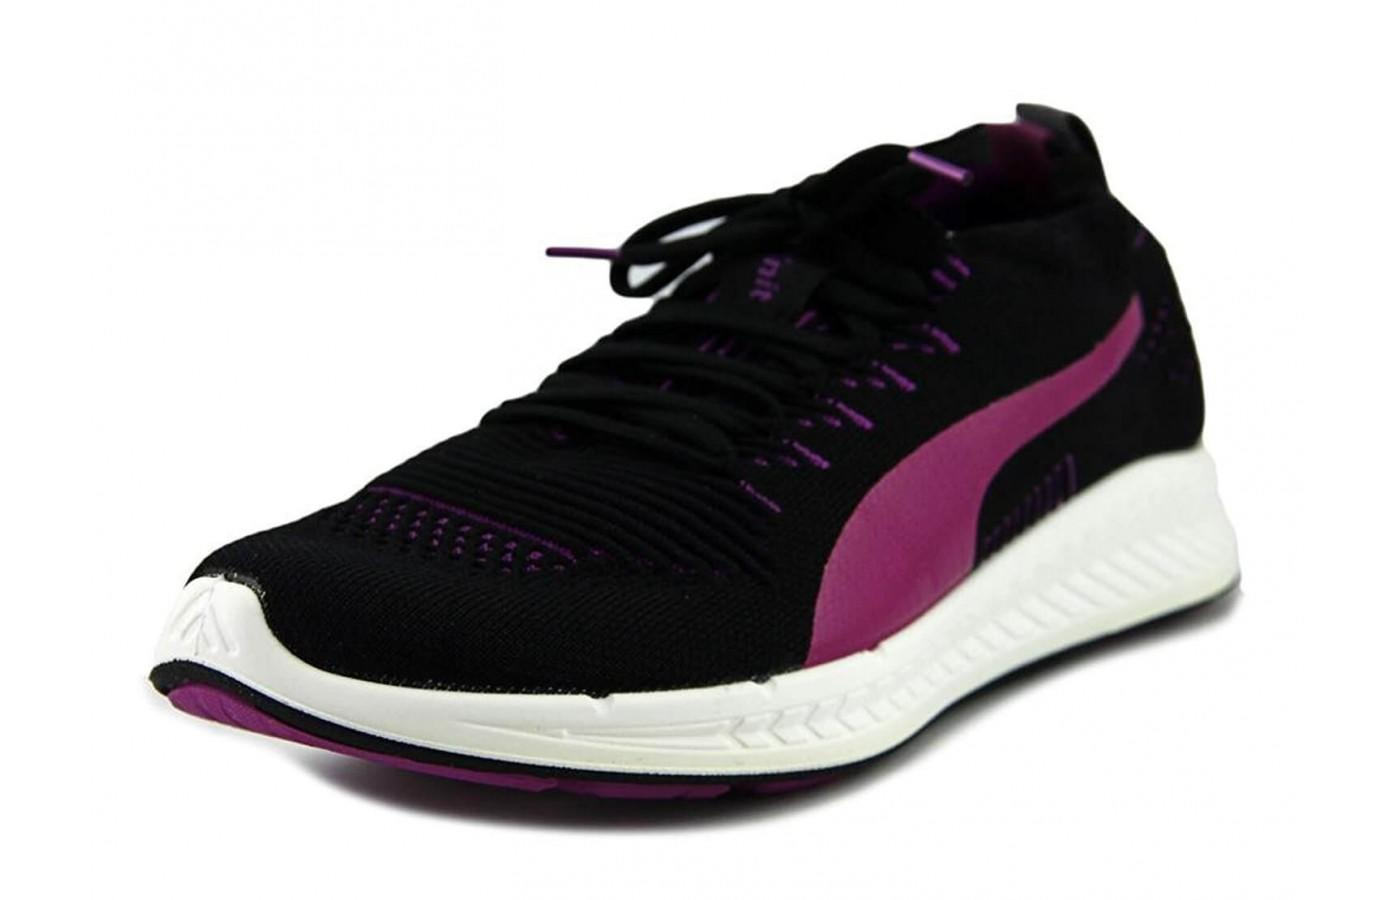 6bdb45a1d7708 Puma Ignite Proknit. The upper has larger than average air holes for  maximum breathability ...